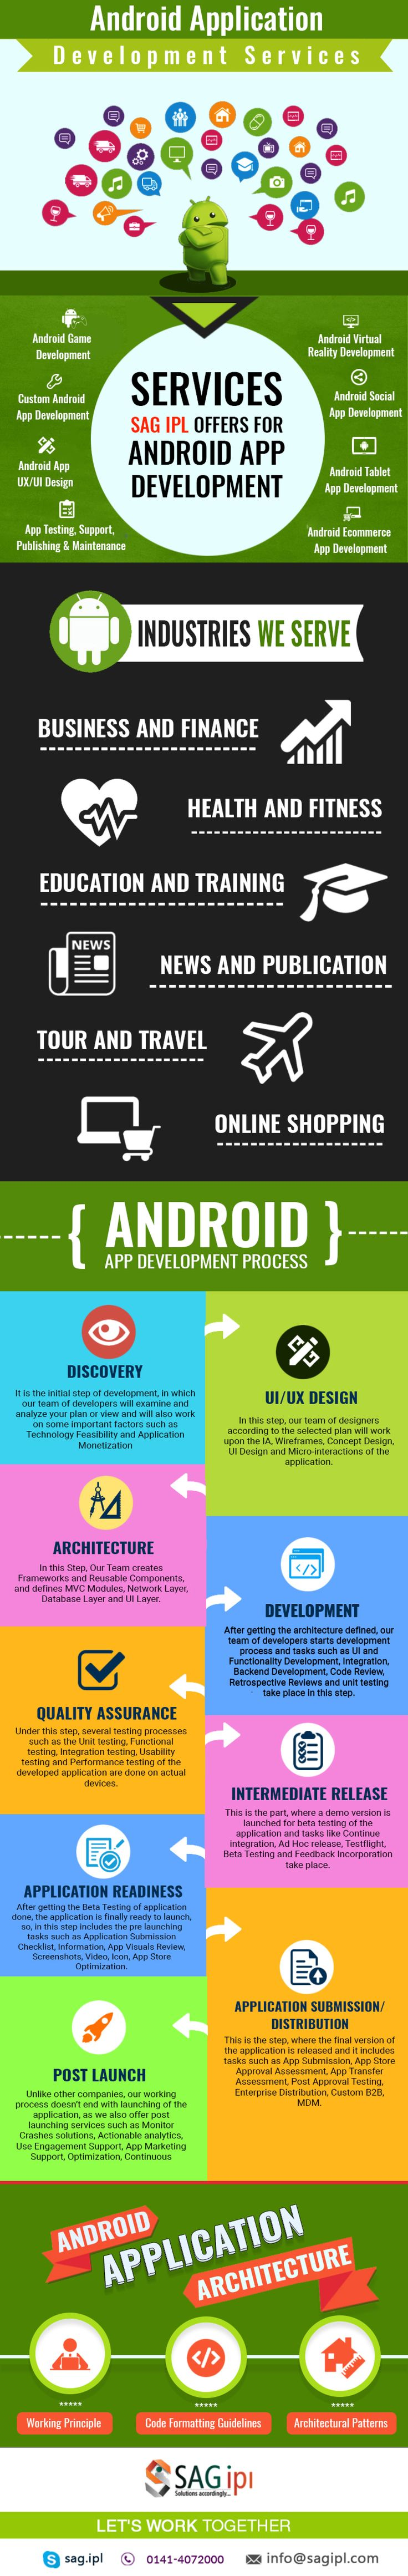 Android App Services , Android Application Development